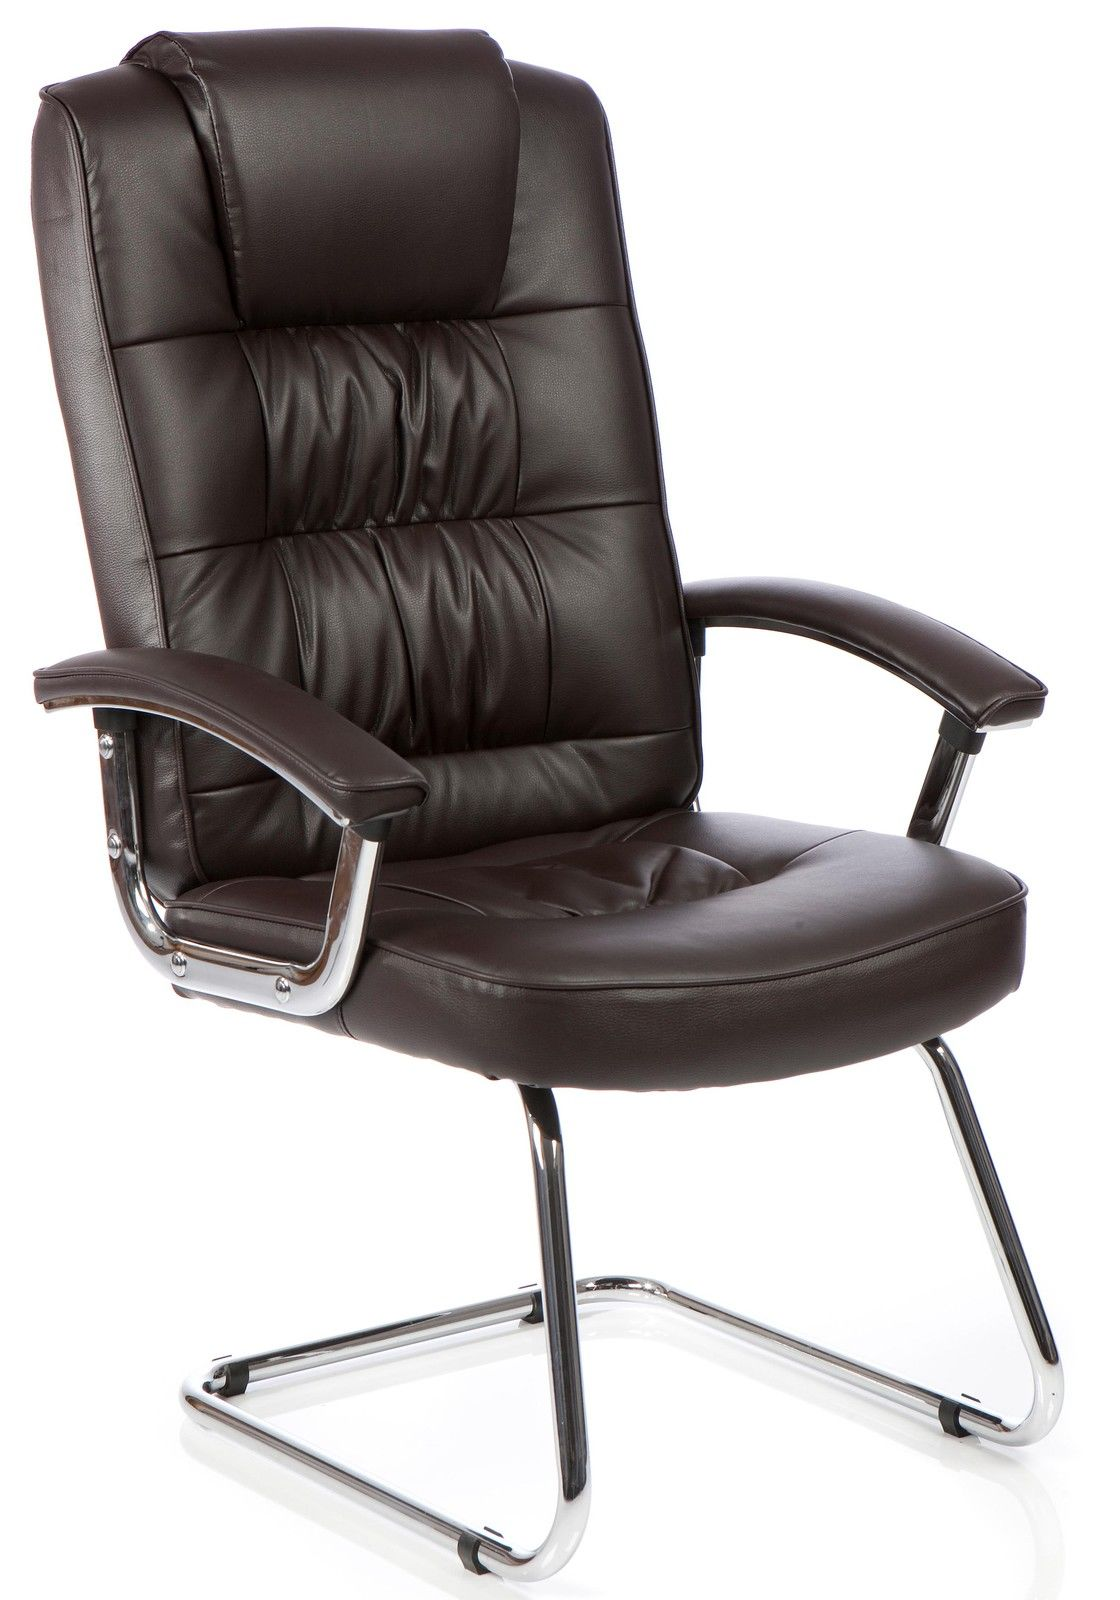 moore deluxe leather chrome cantilever framed visitors meeting boardroom chair ebay. Black Bedroom Furniture Sets. Home Design Ideas